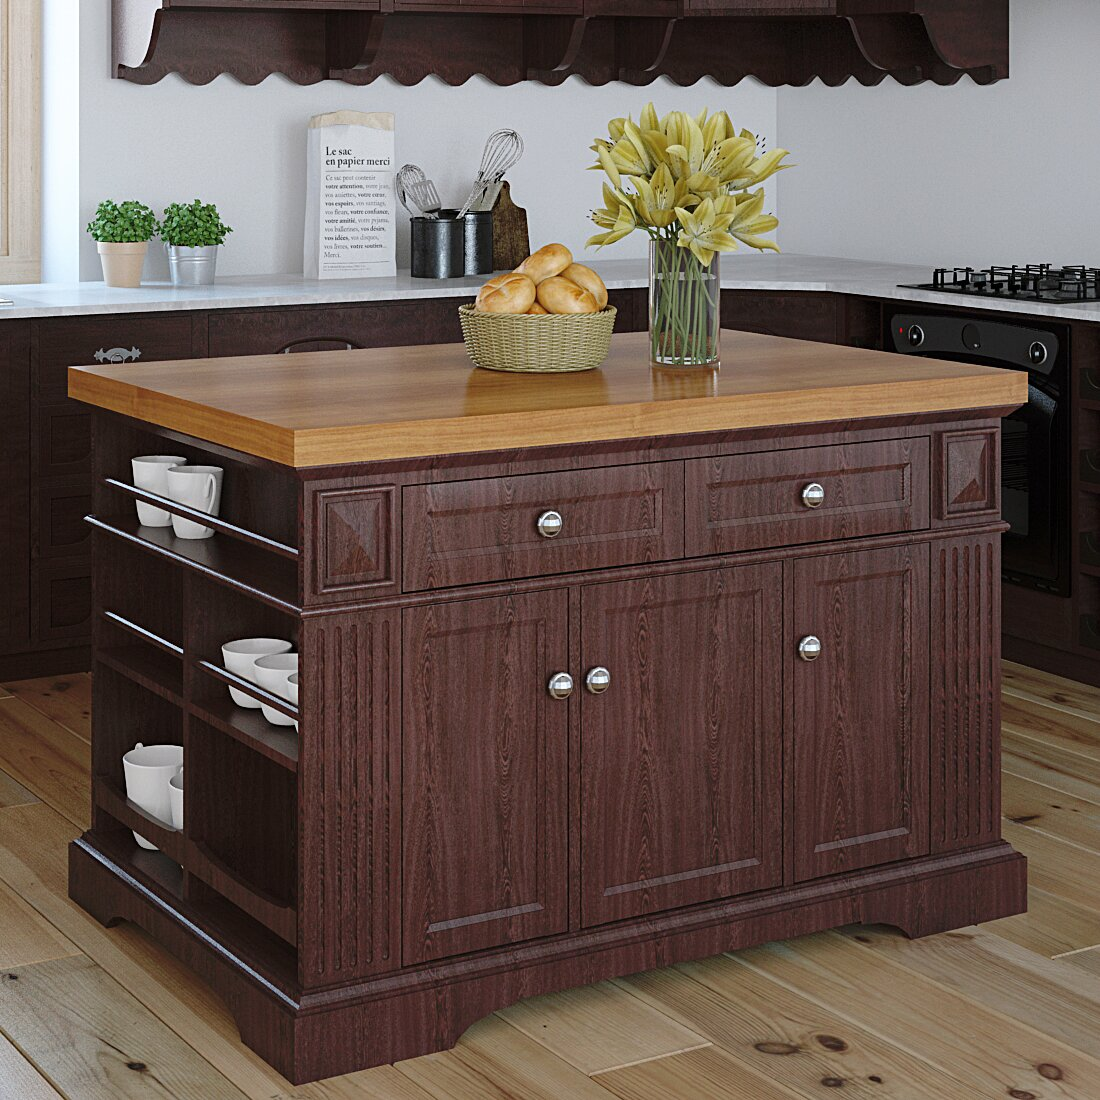 Kitchen Wood Top: 222 Fifth Furniture Greenwich Kitchen Island With Wood Top